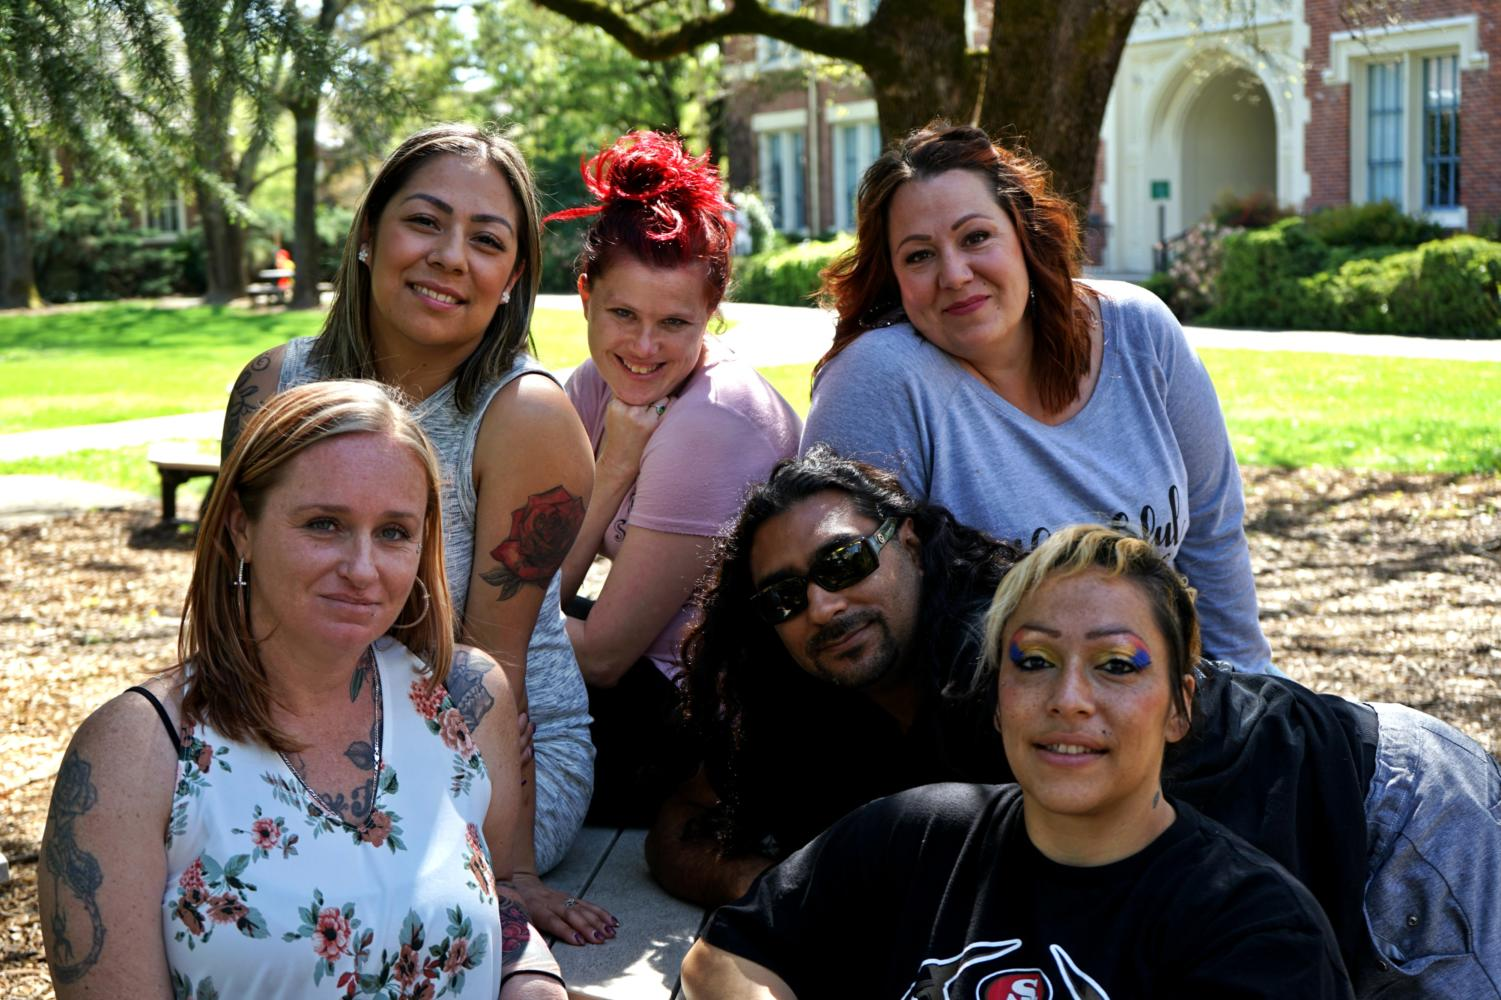 The Second Chance Club's mission is to provide support and advocacy for formerly incarcerated students trying to turn their lives around through education. The club offers scholarship opportunities, workshops to clear records and a sense of community in a judgement-free zone.